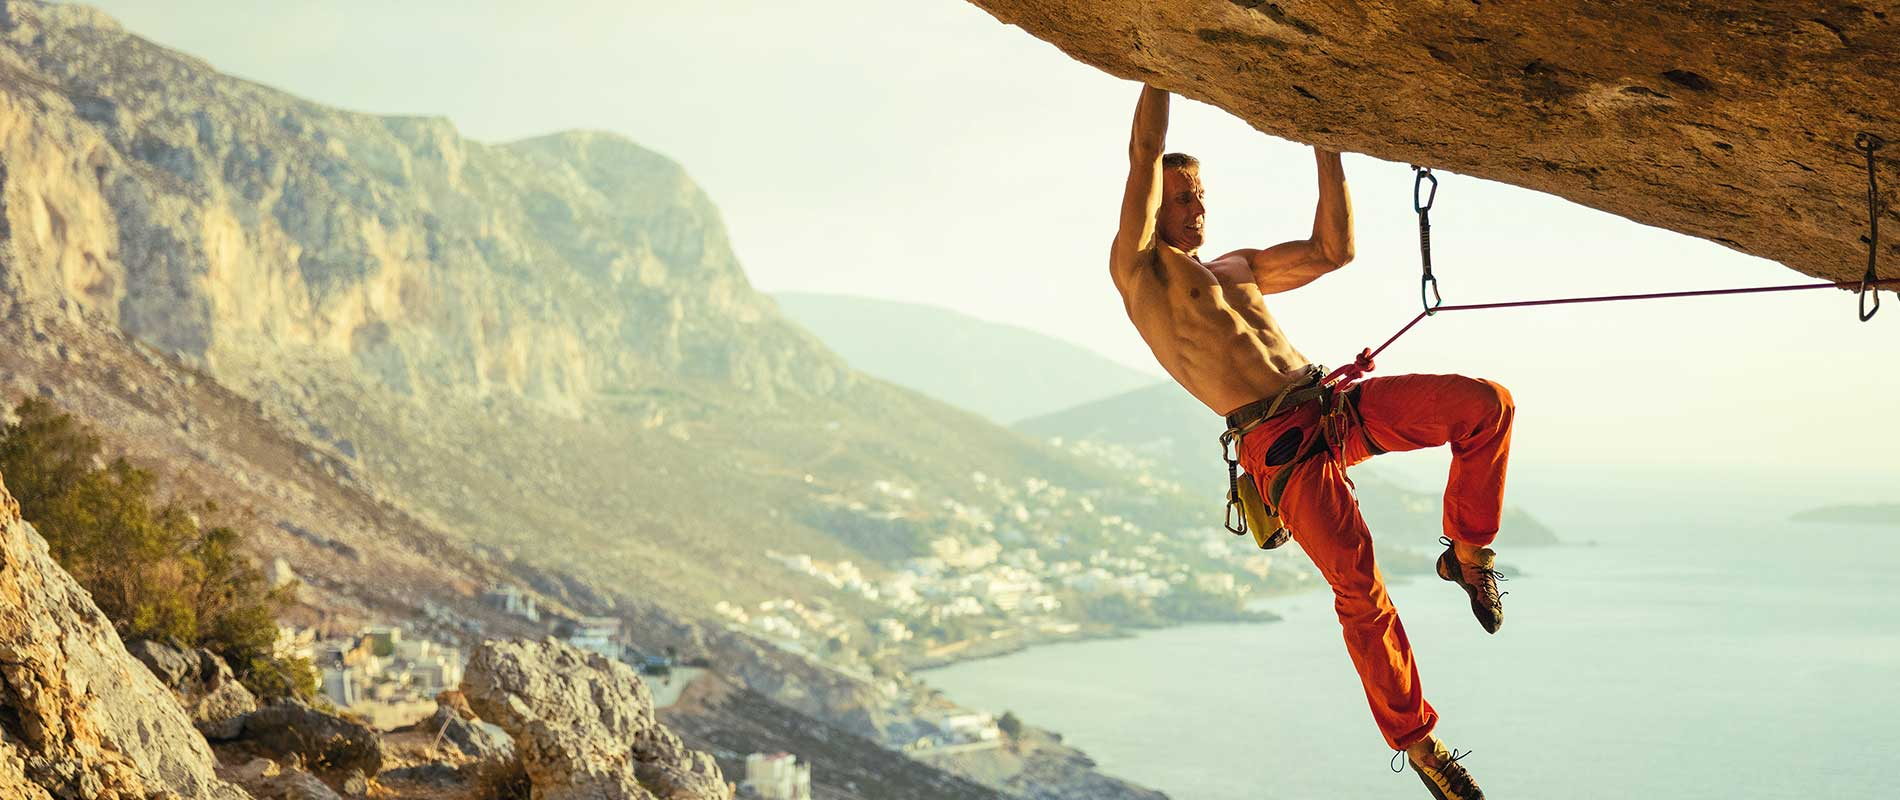 HEADER-ESCALADA